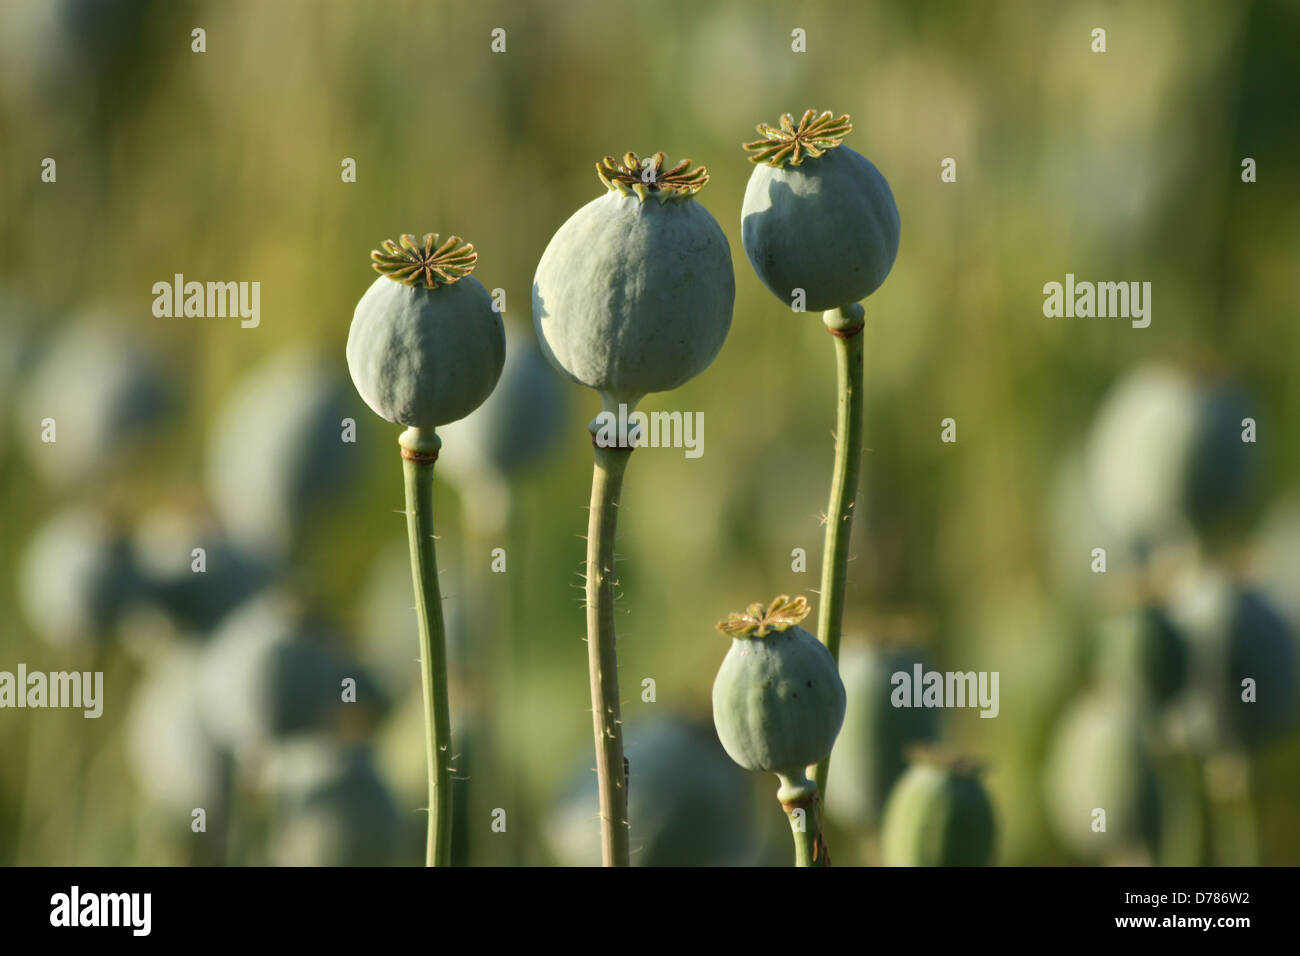 opium poppy heads in green agriculture field - Stock Image